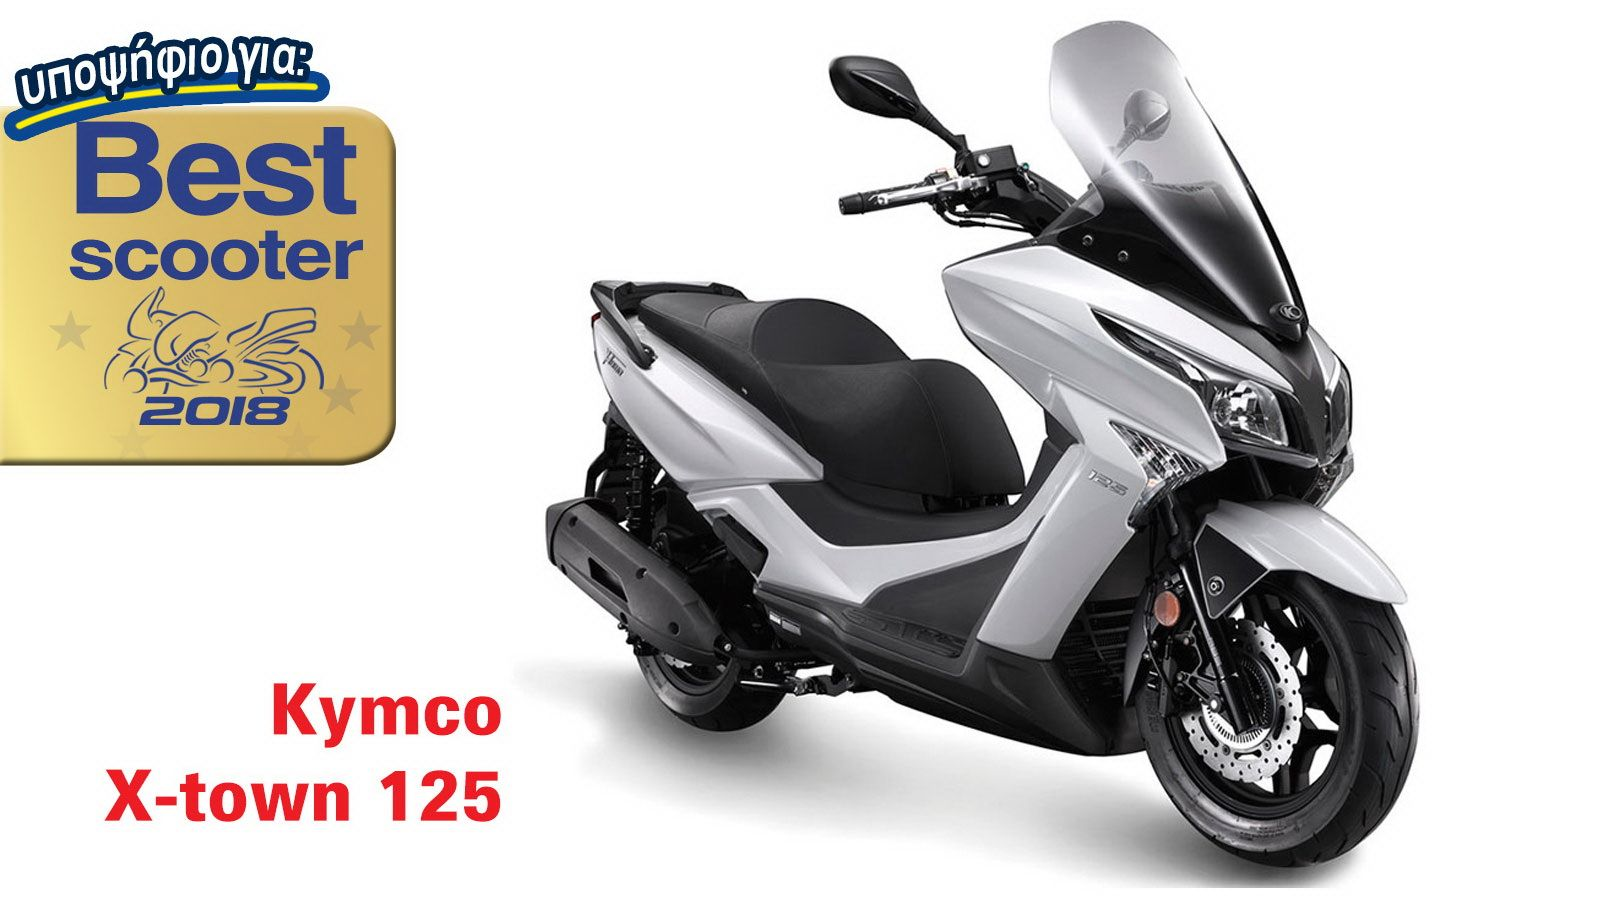 kymco x town 125 best scooter 2018 kymco. Black Bedroom Furniture Sets. Home Design Ideas